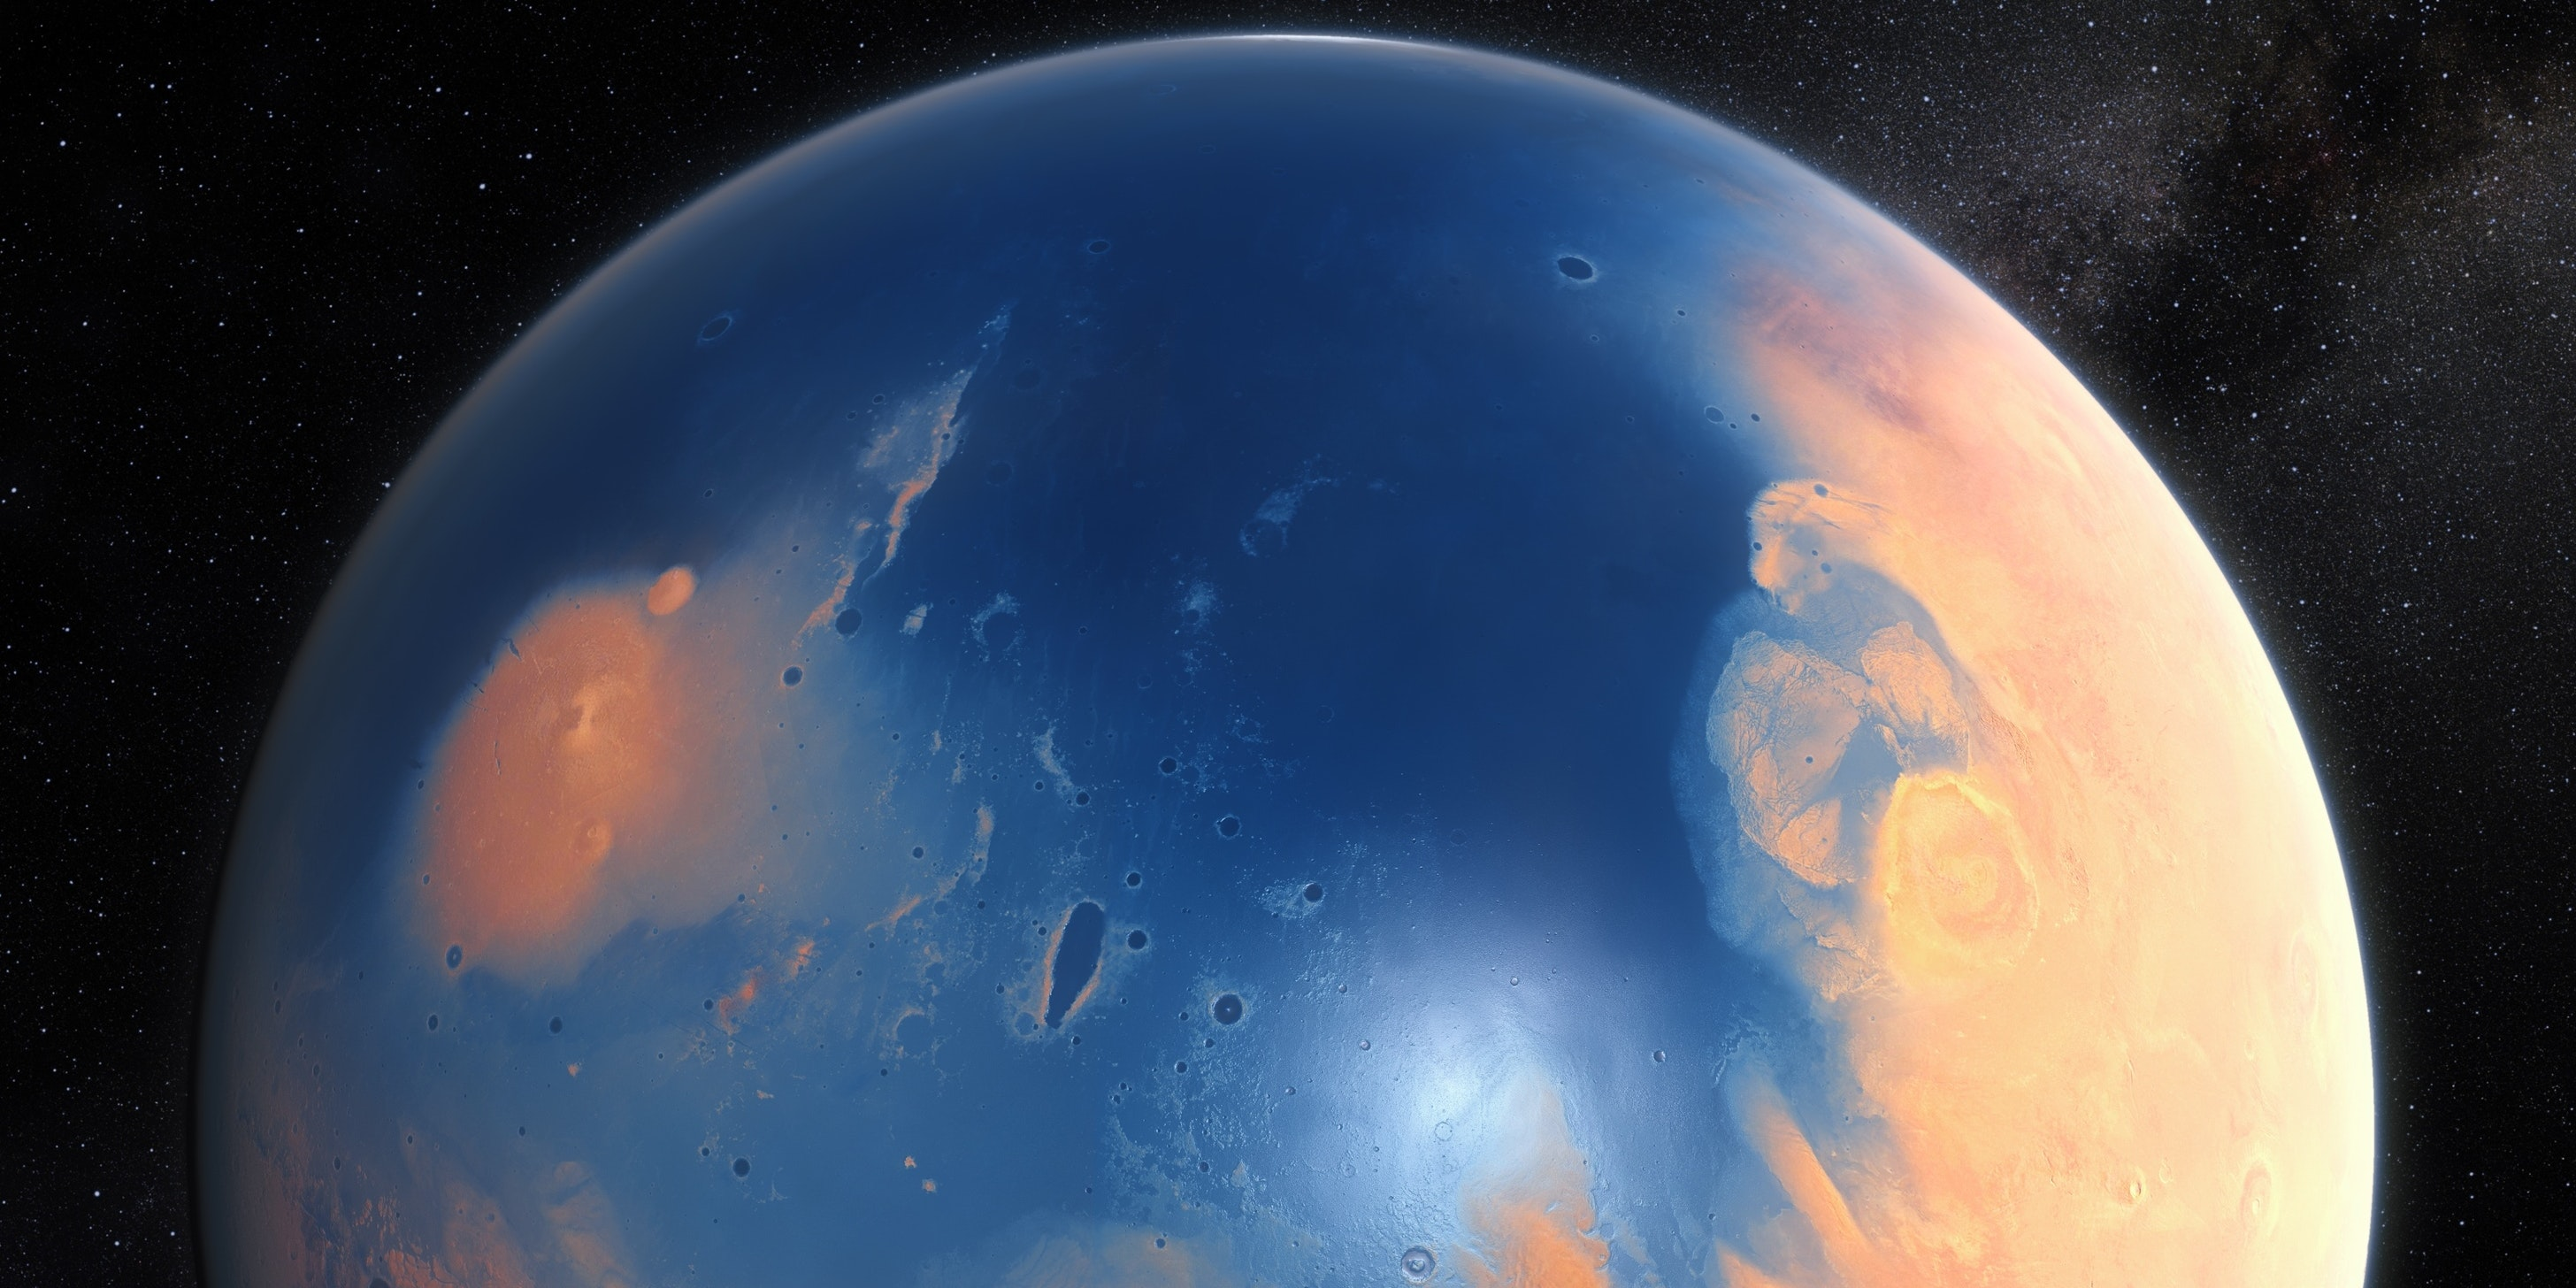 Mars Had Lakes of Water Way More Recently than We Thought